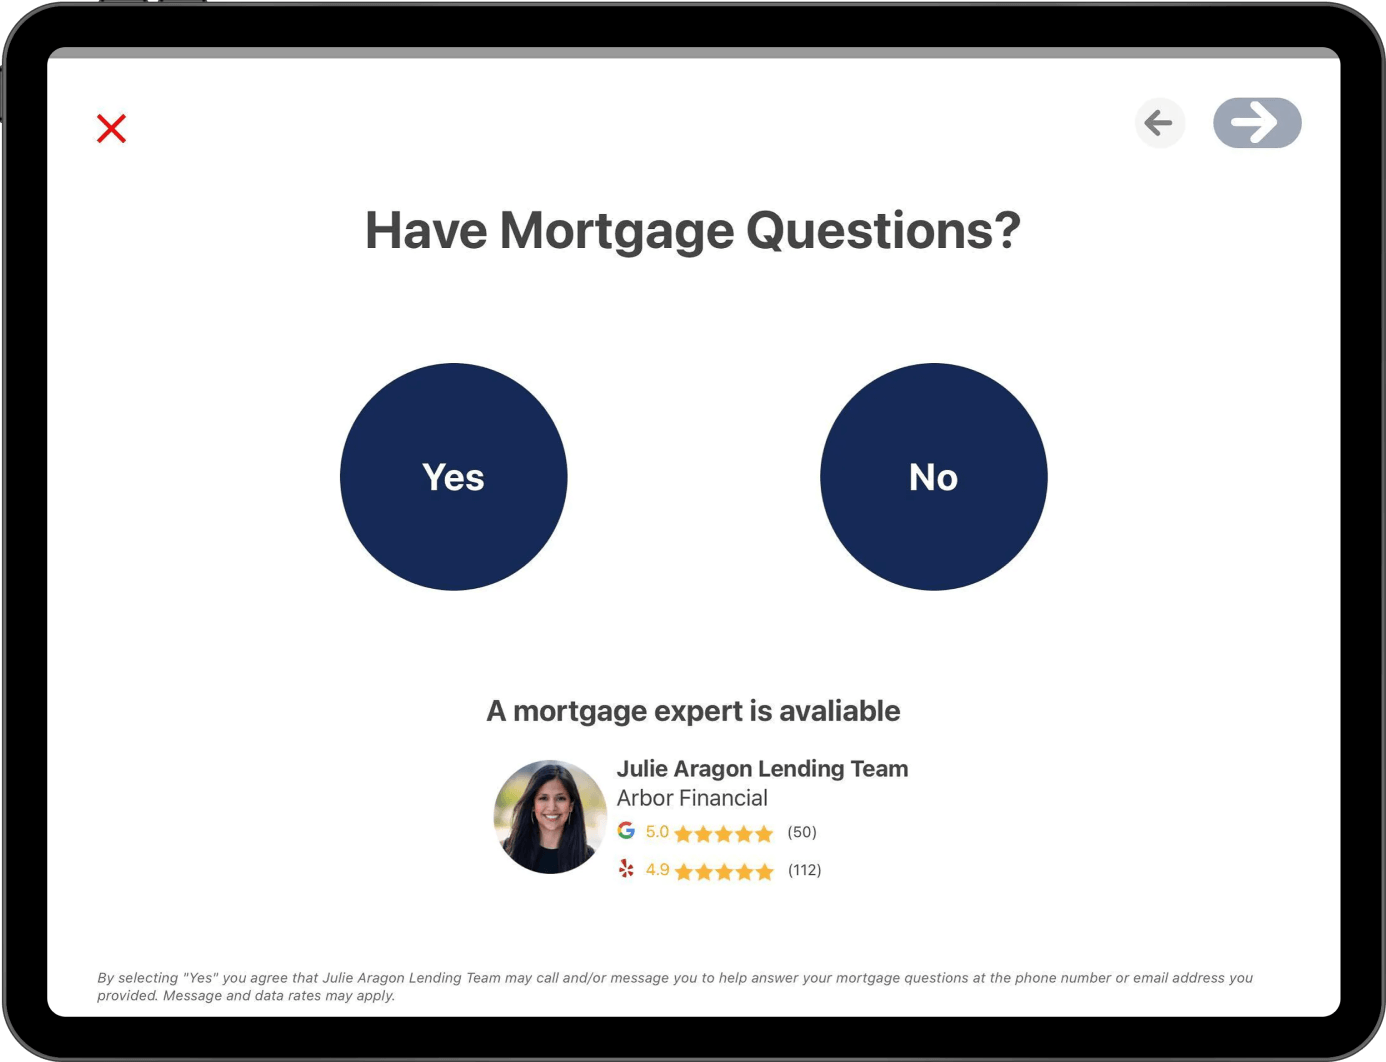 ipad_mortgage_question-1-1